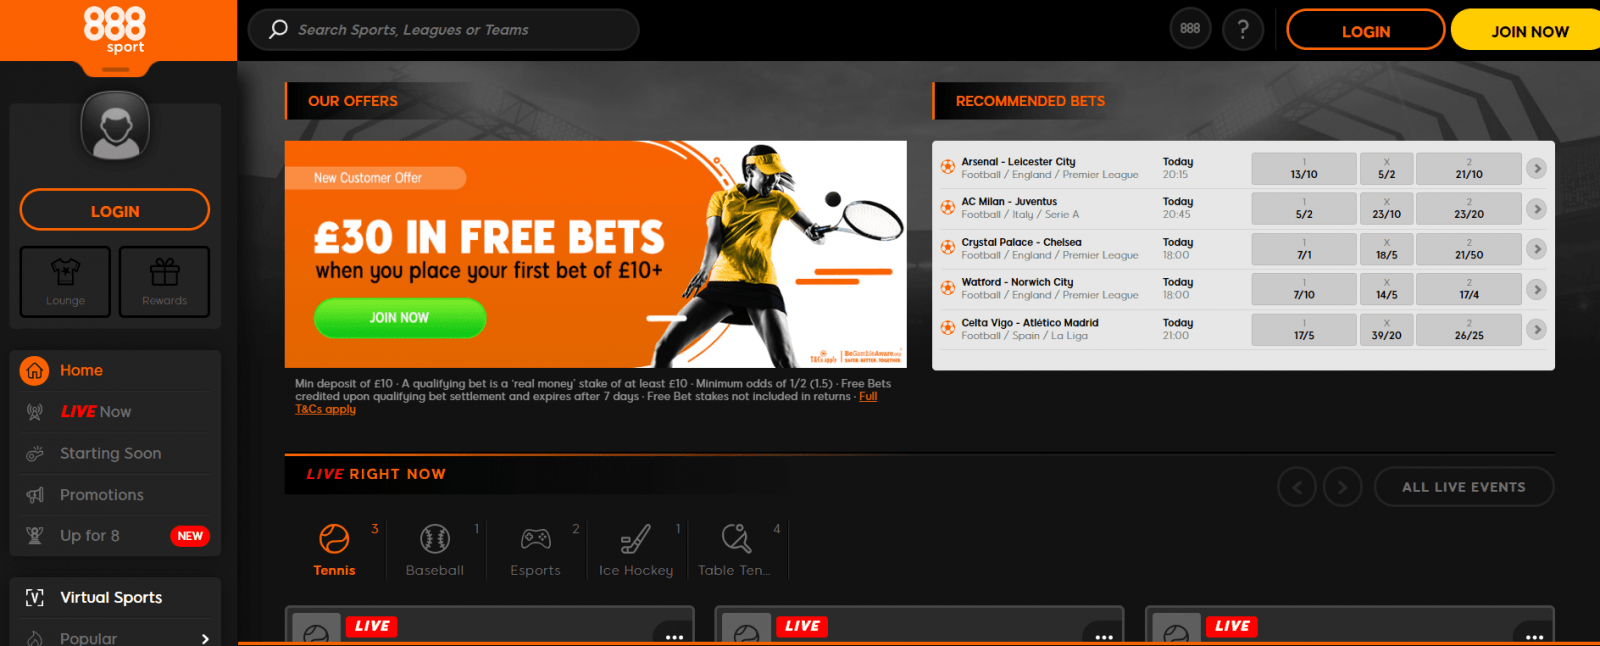 live streaming betting sites 888Sports